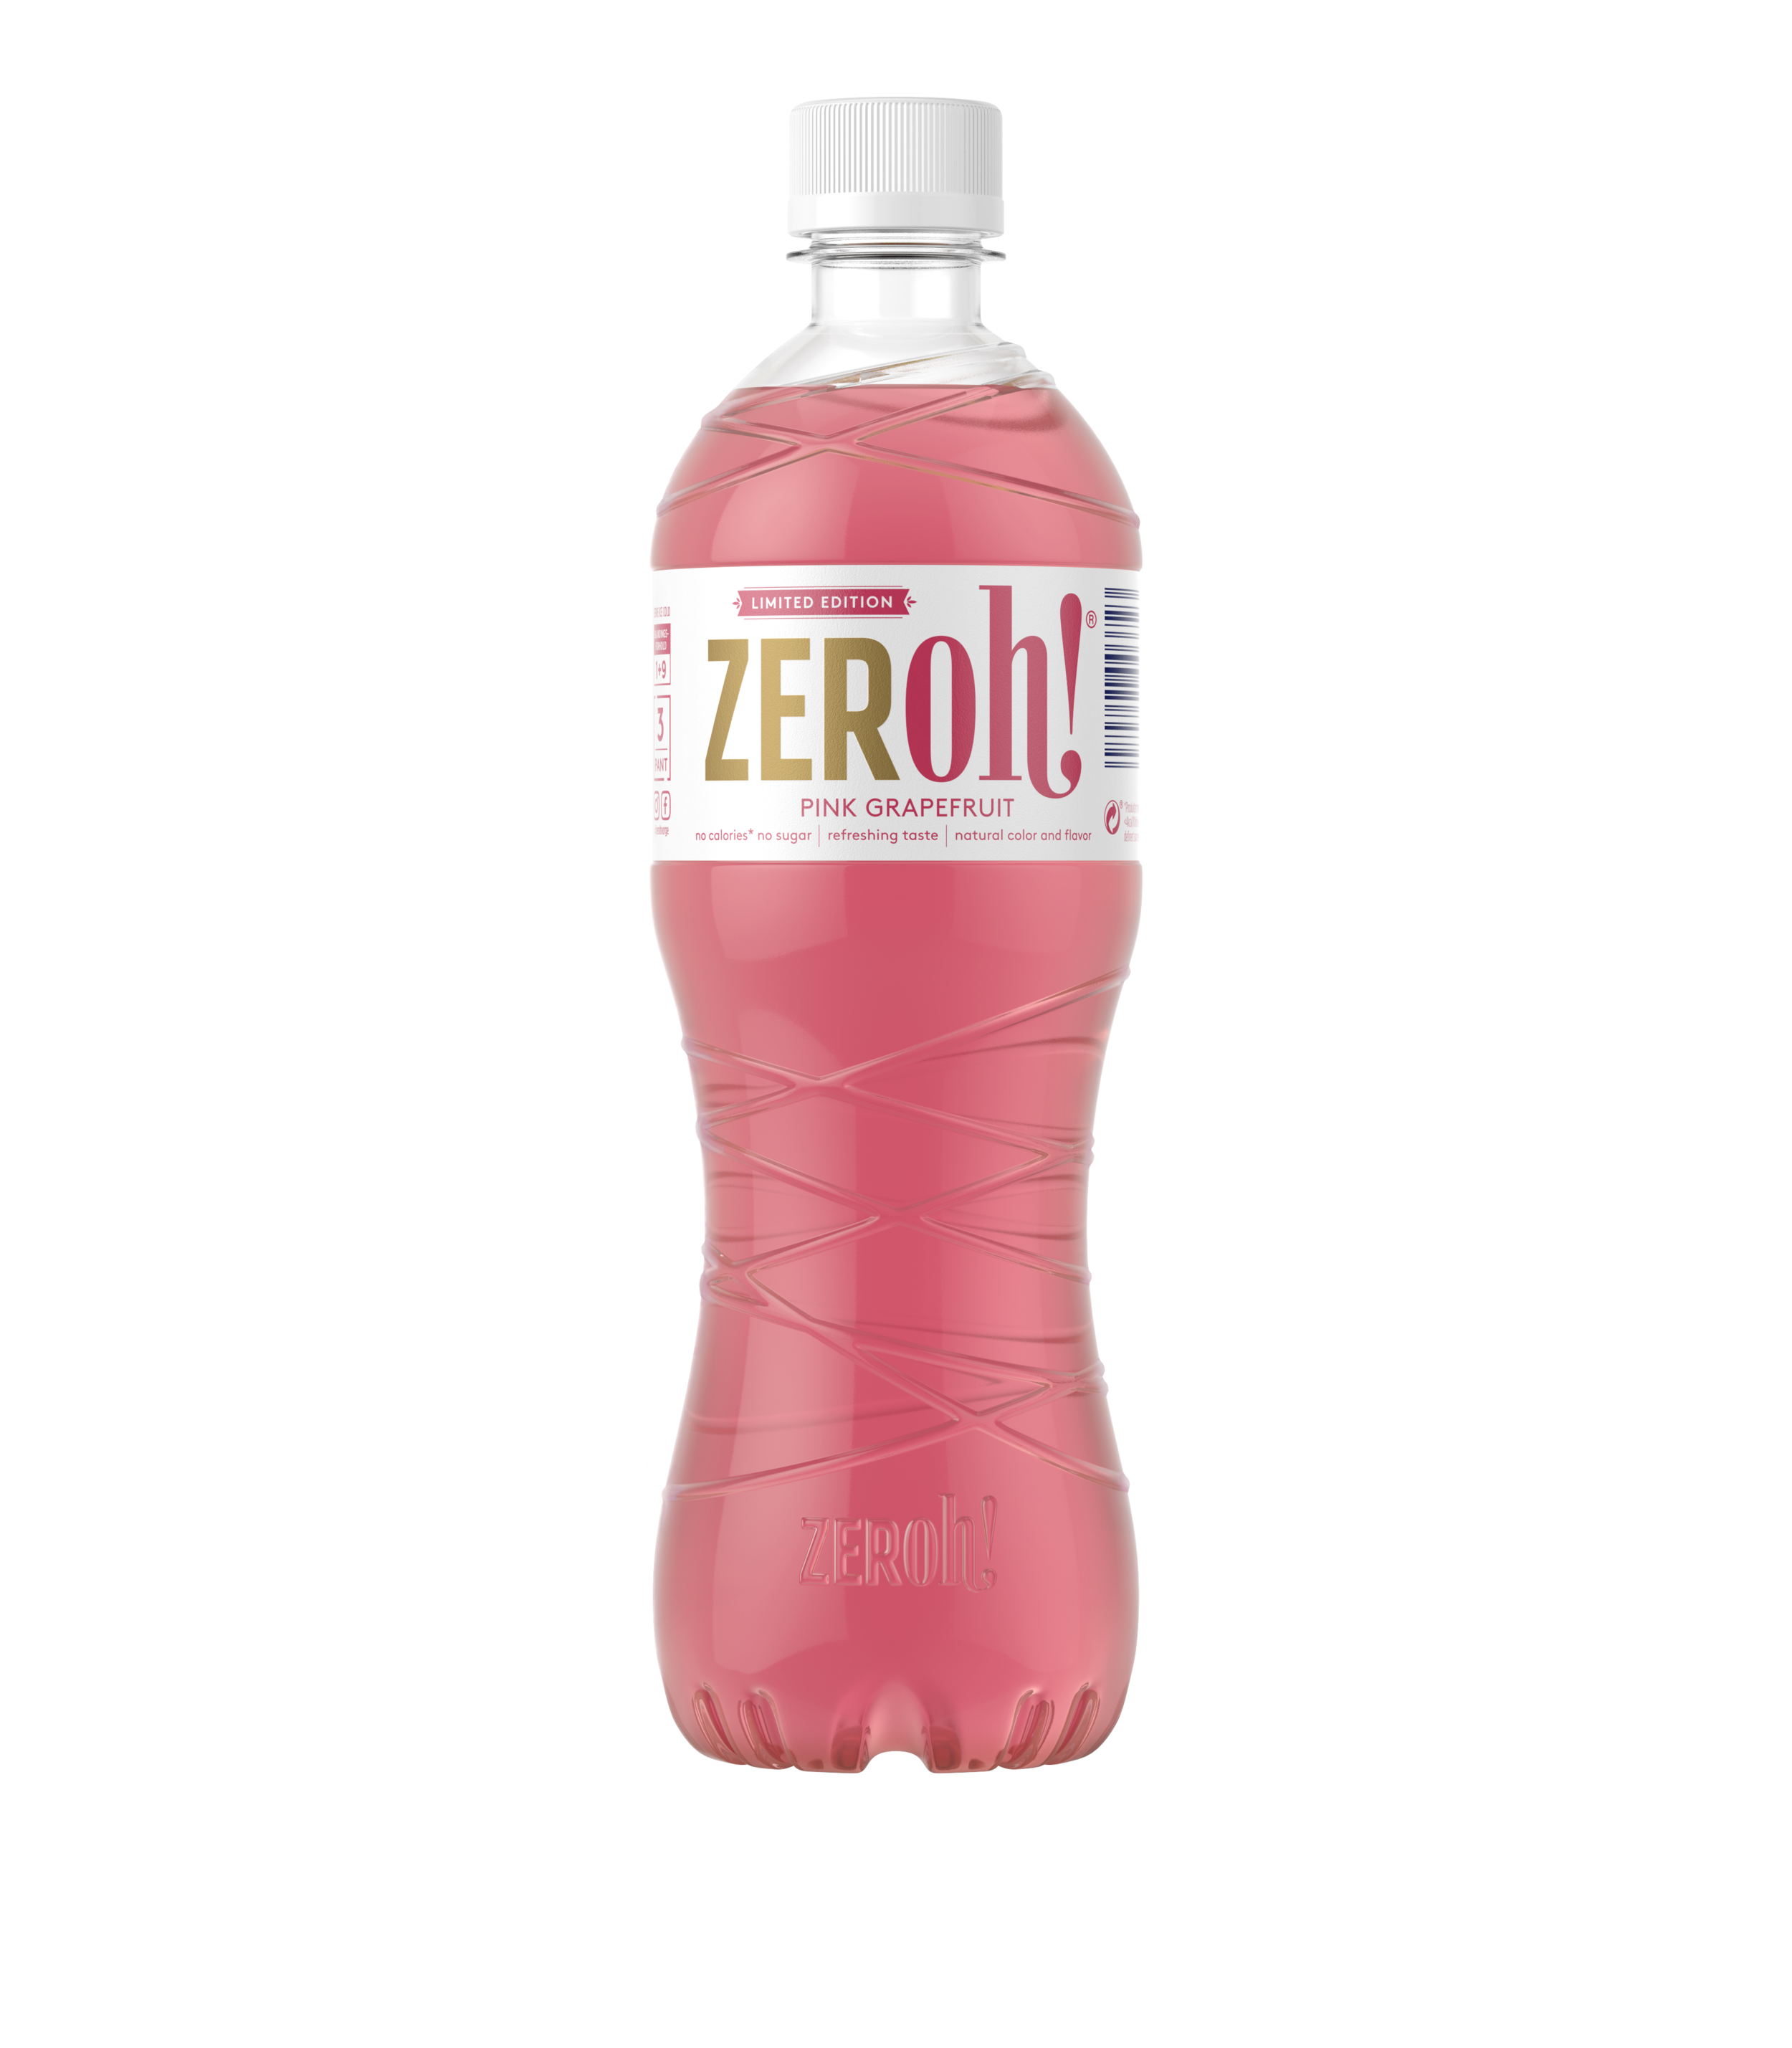 ZERoh! Pink Grapefruit 2019 3D transparent.png